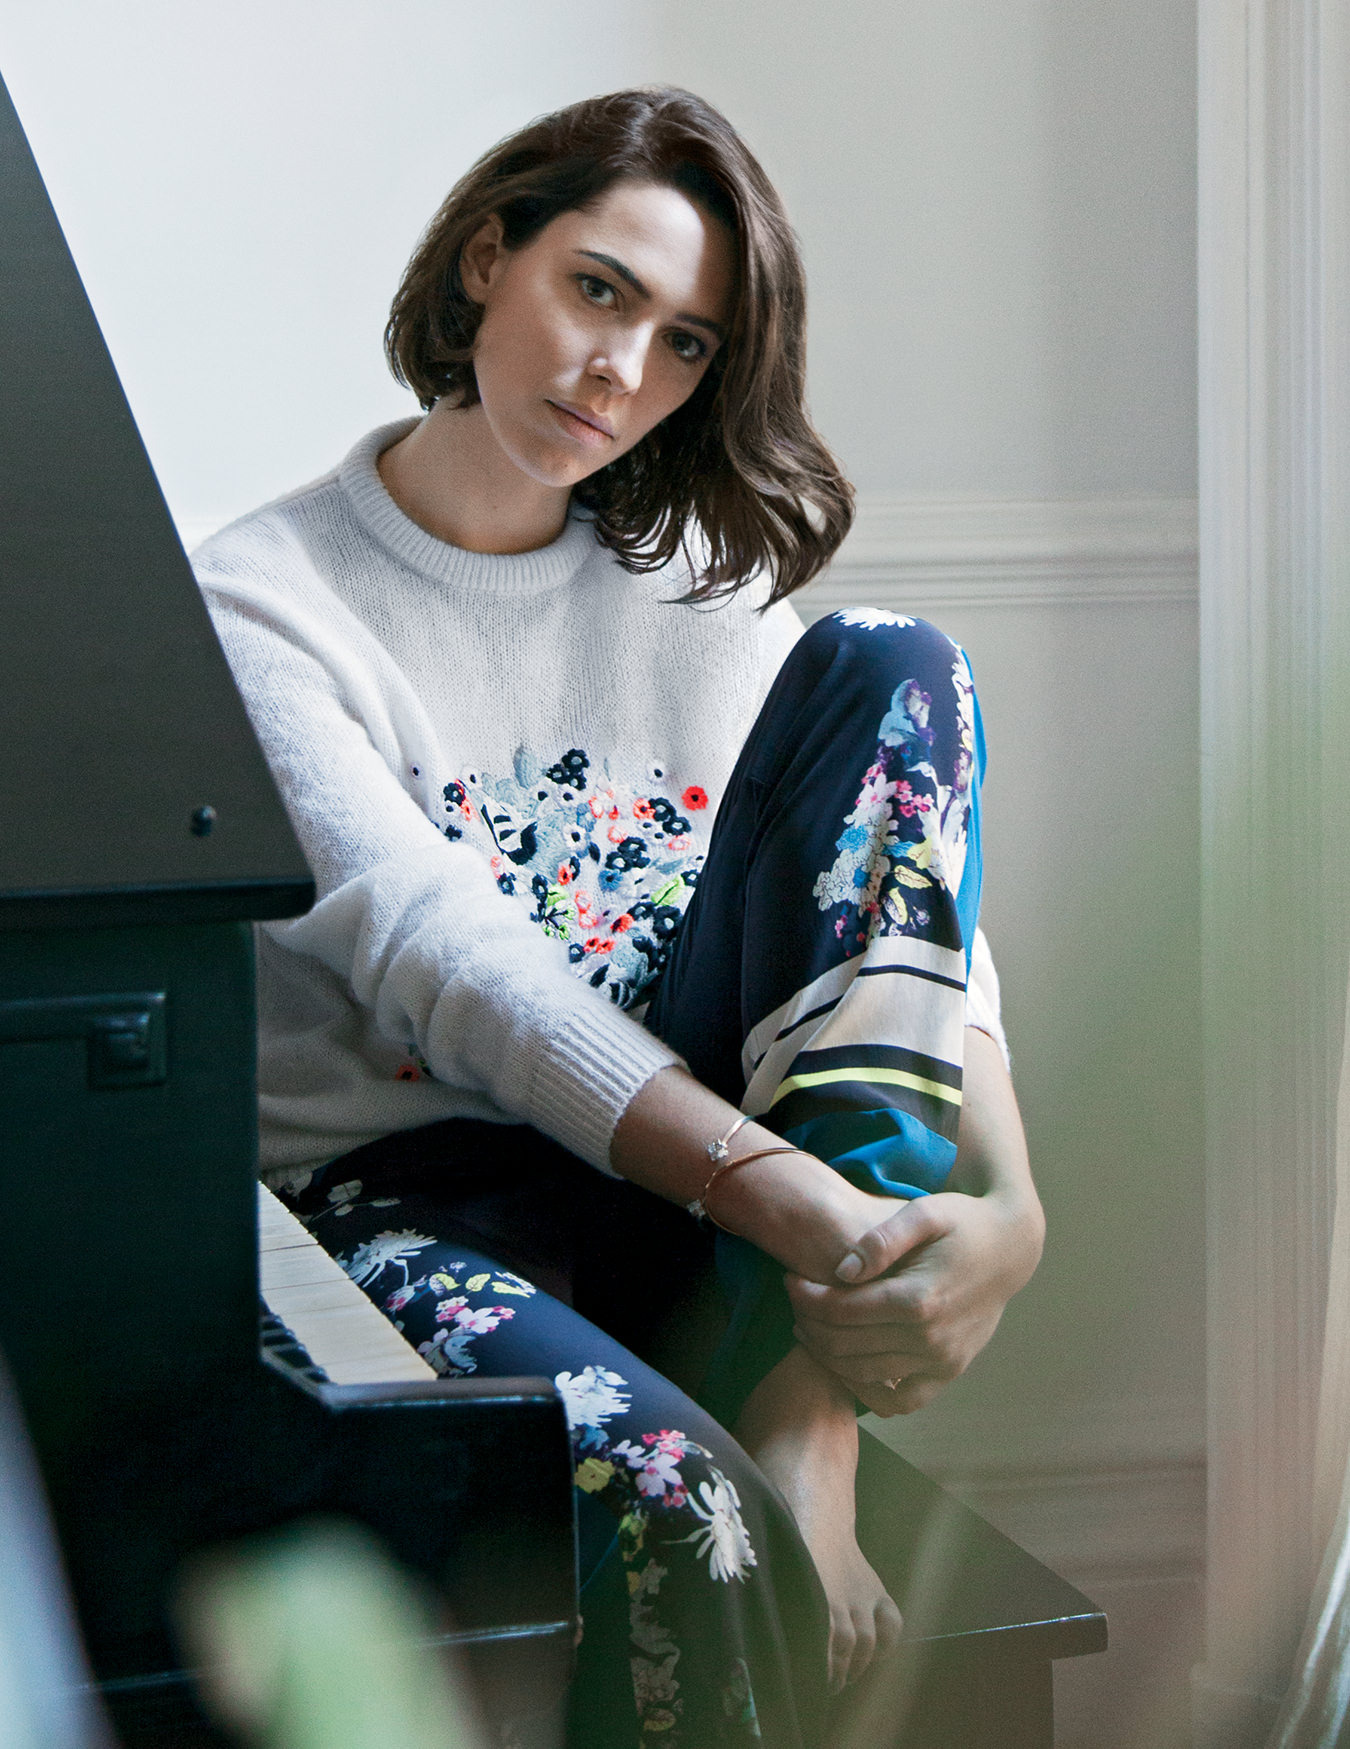 Quotes About Life Cover Photos For Facebook Timeline For Girls Tagalog Rebecca Hall's Feet Re...